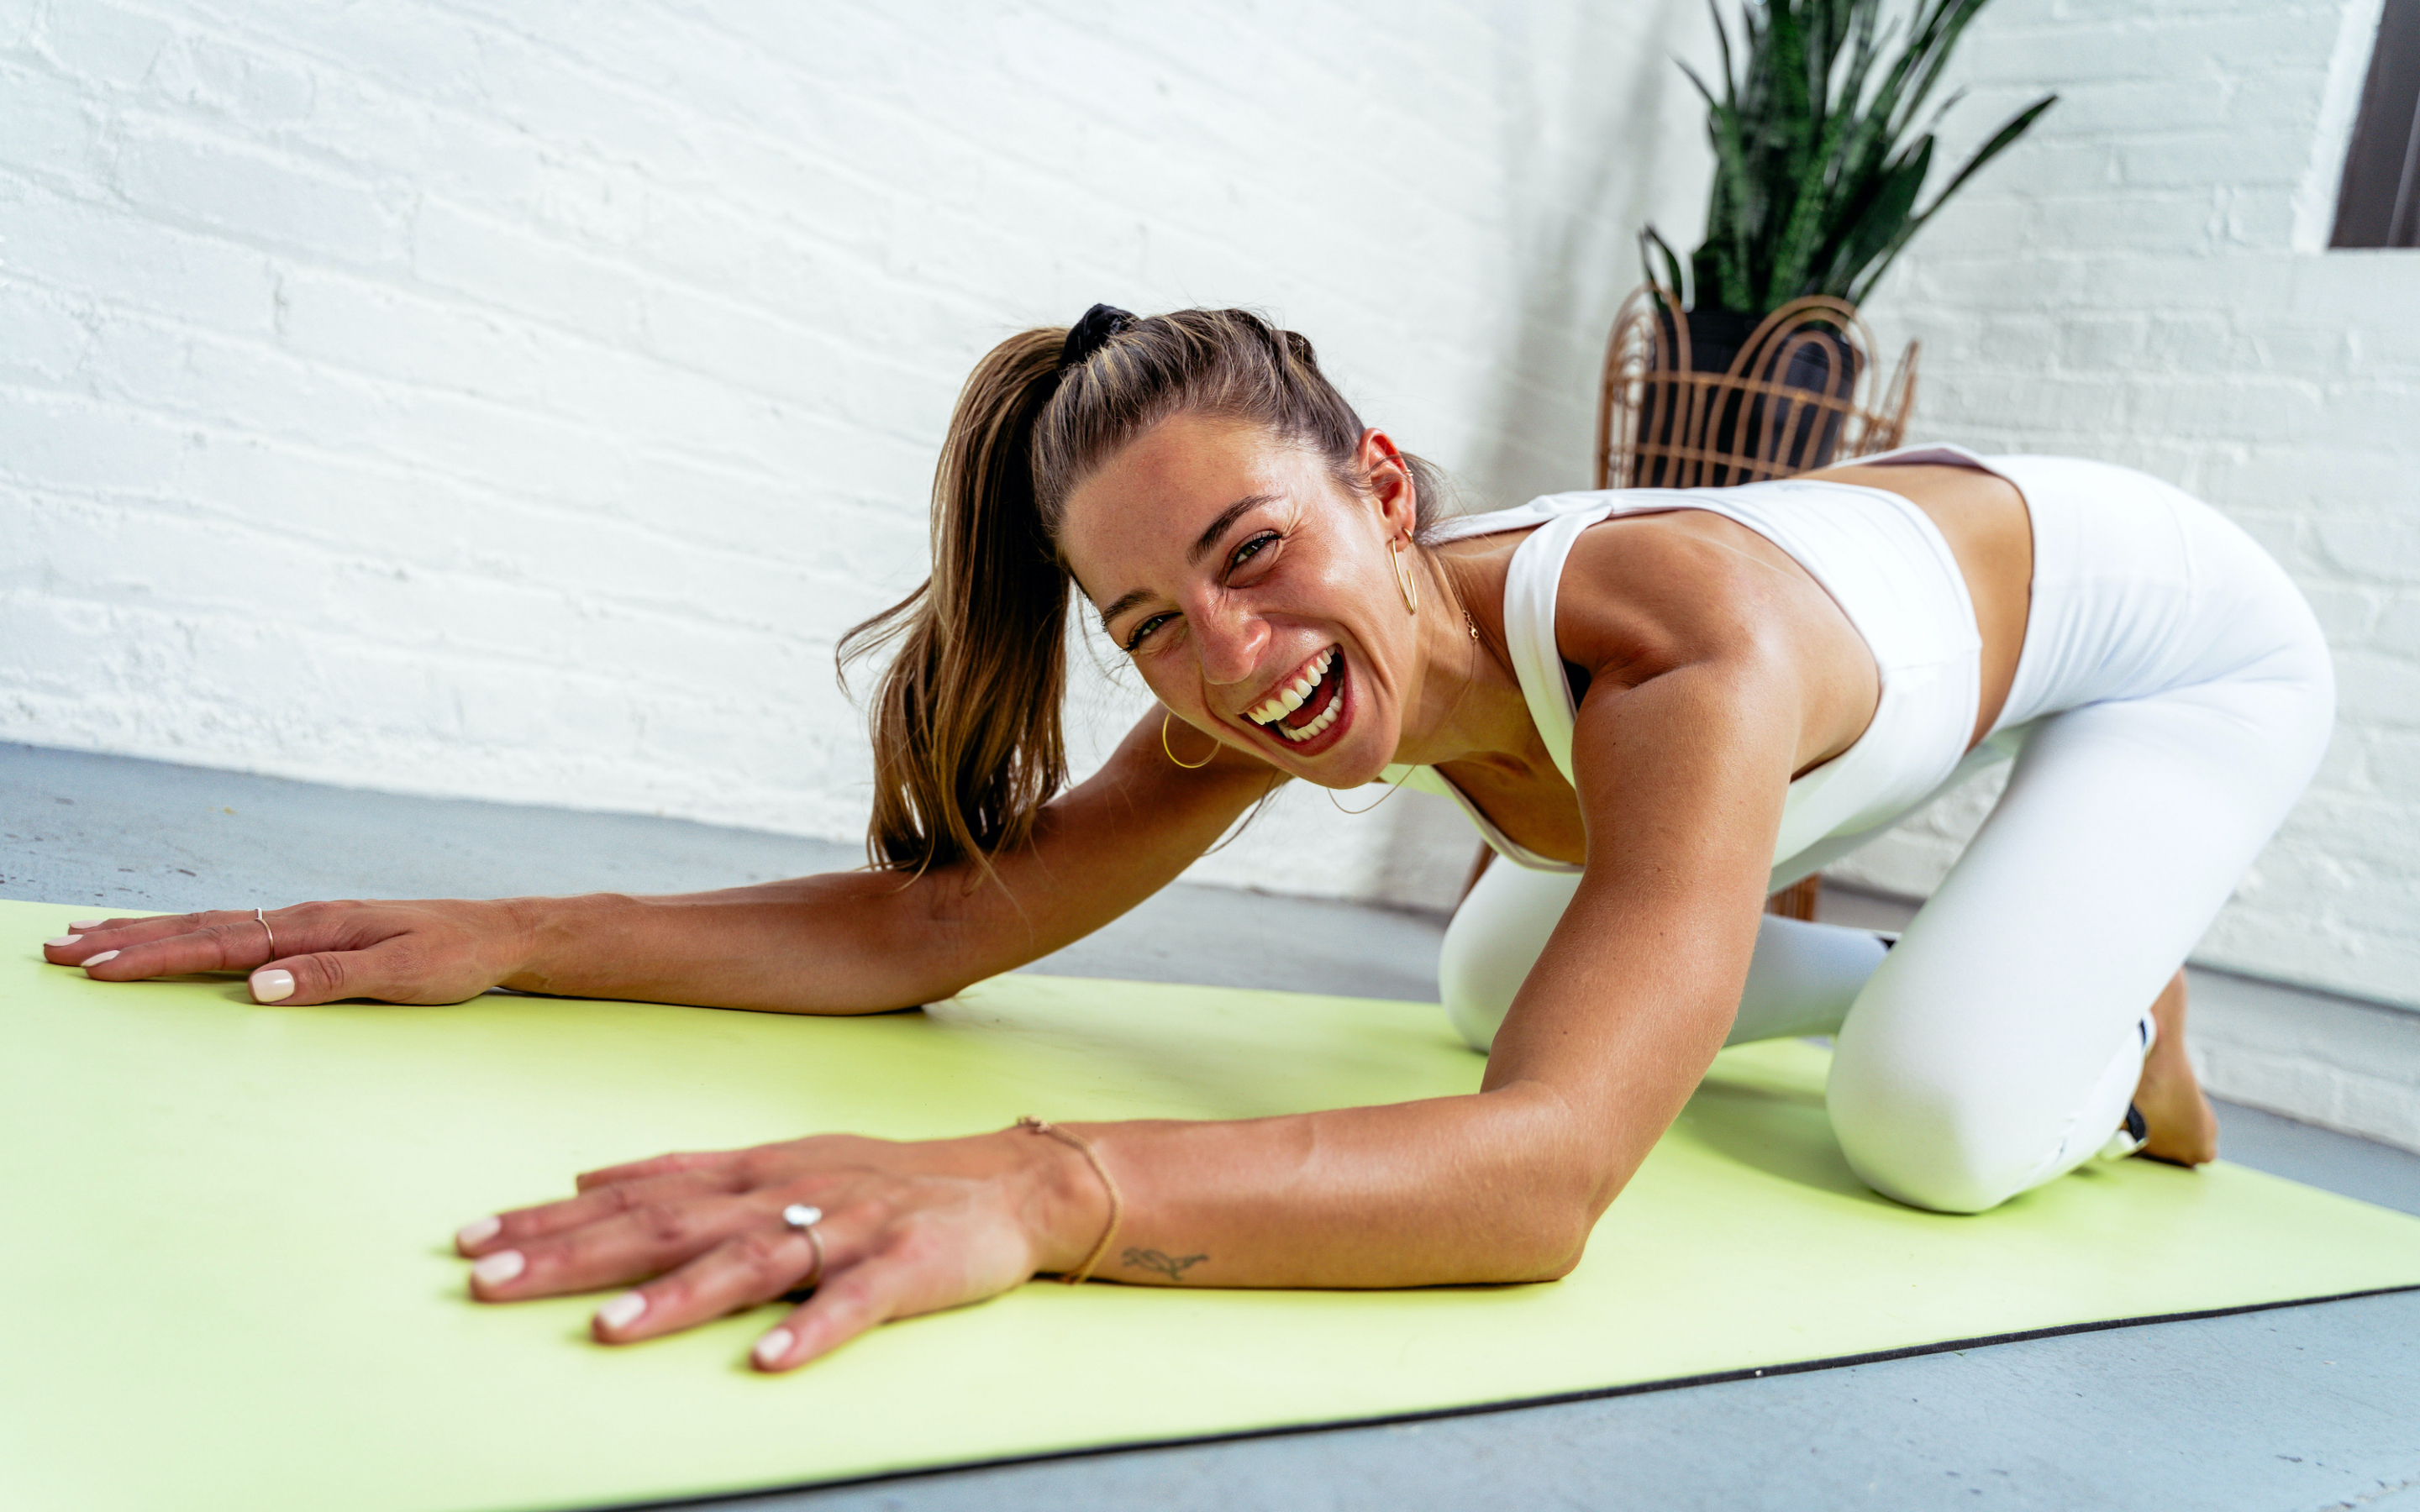 Girl in white yoga workout gear laughing and laying down on lime green yoga mat